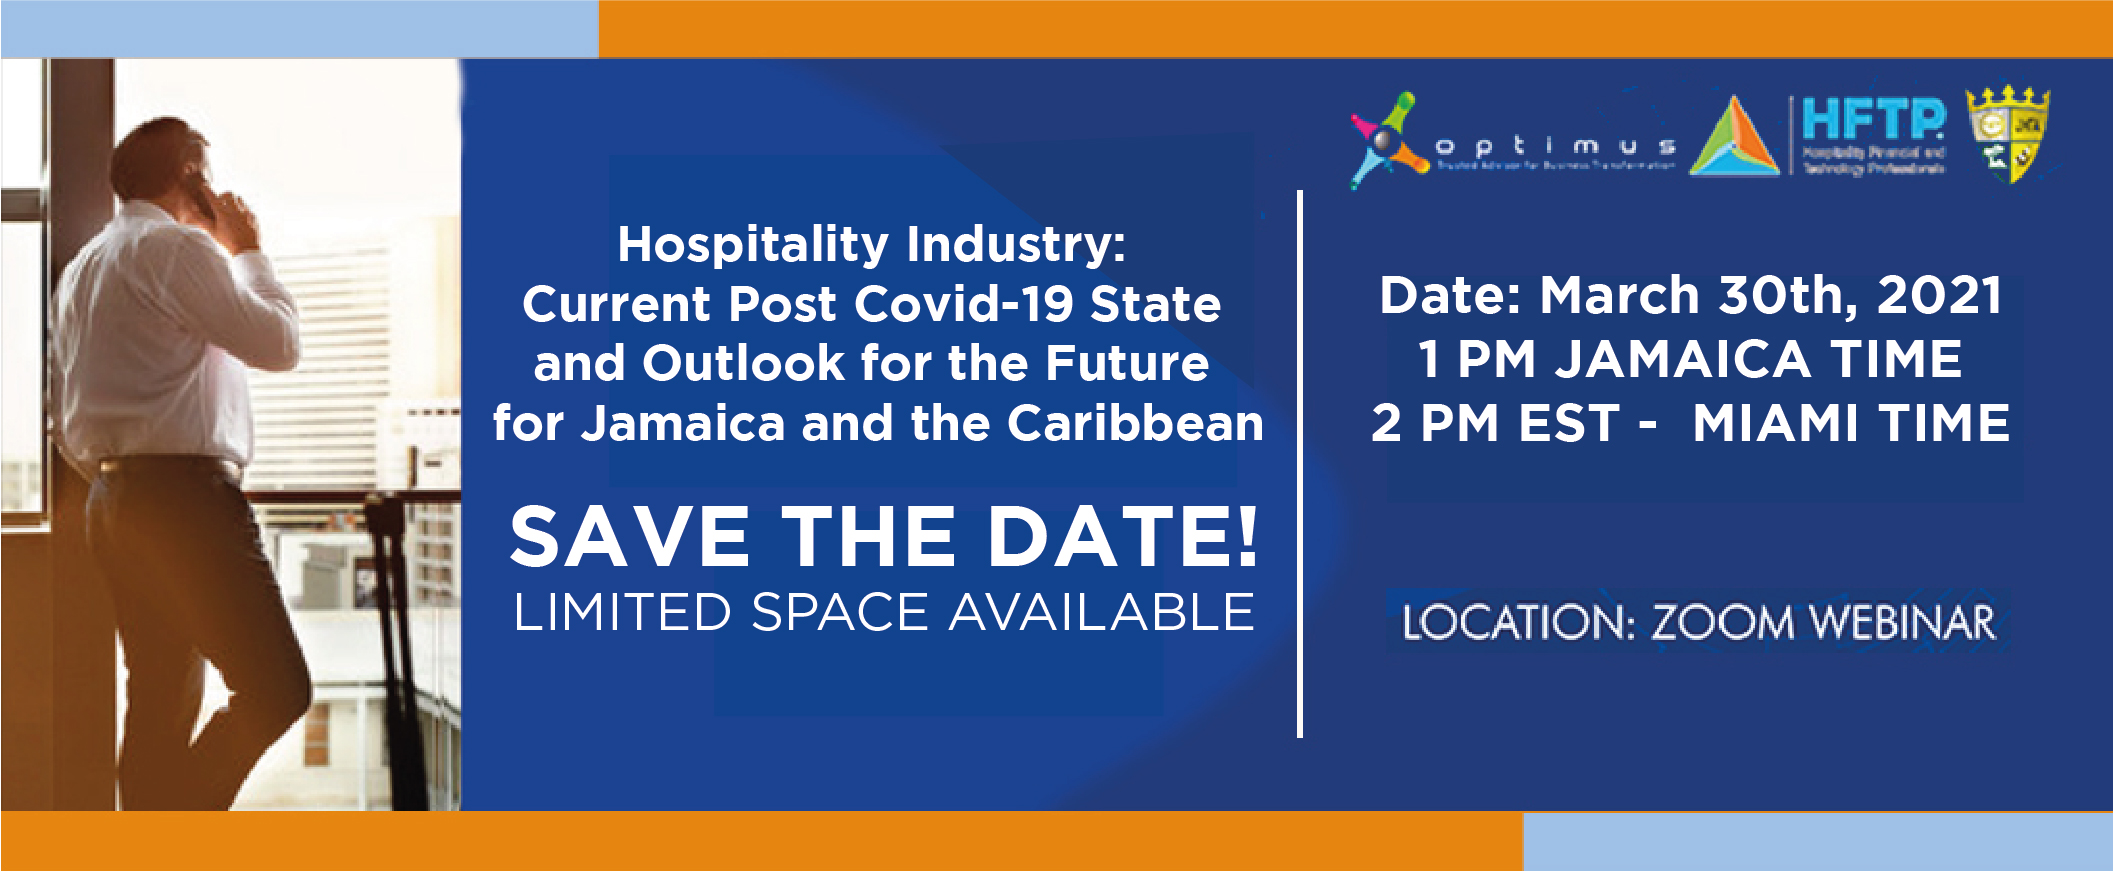 Hospitality Industry: Current Post Covid-19 State and Outlook for the Future for Jamaica and the Caribbean